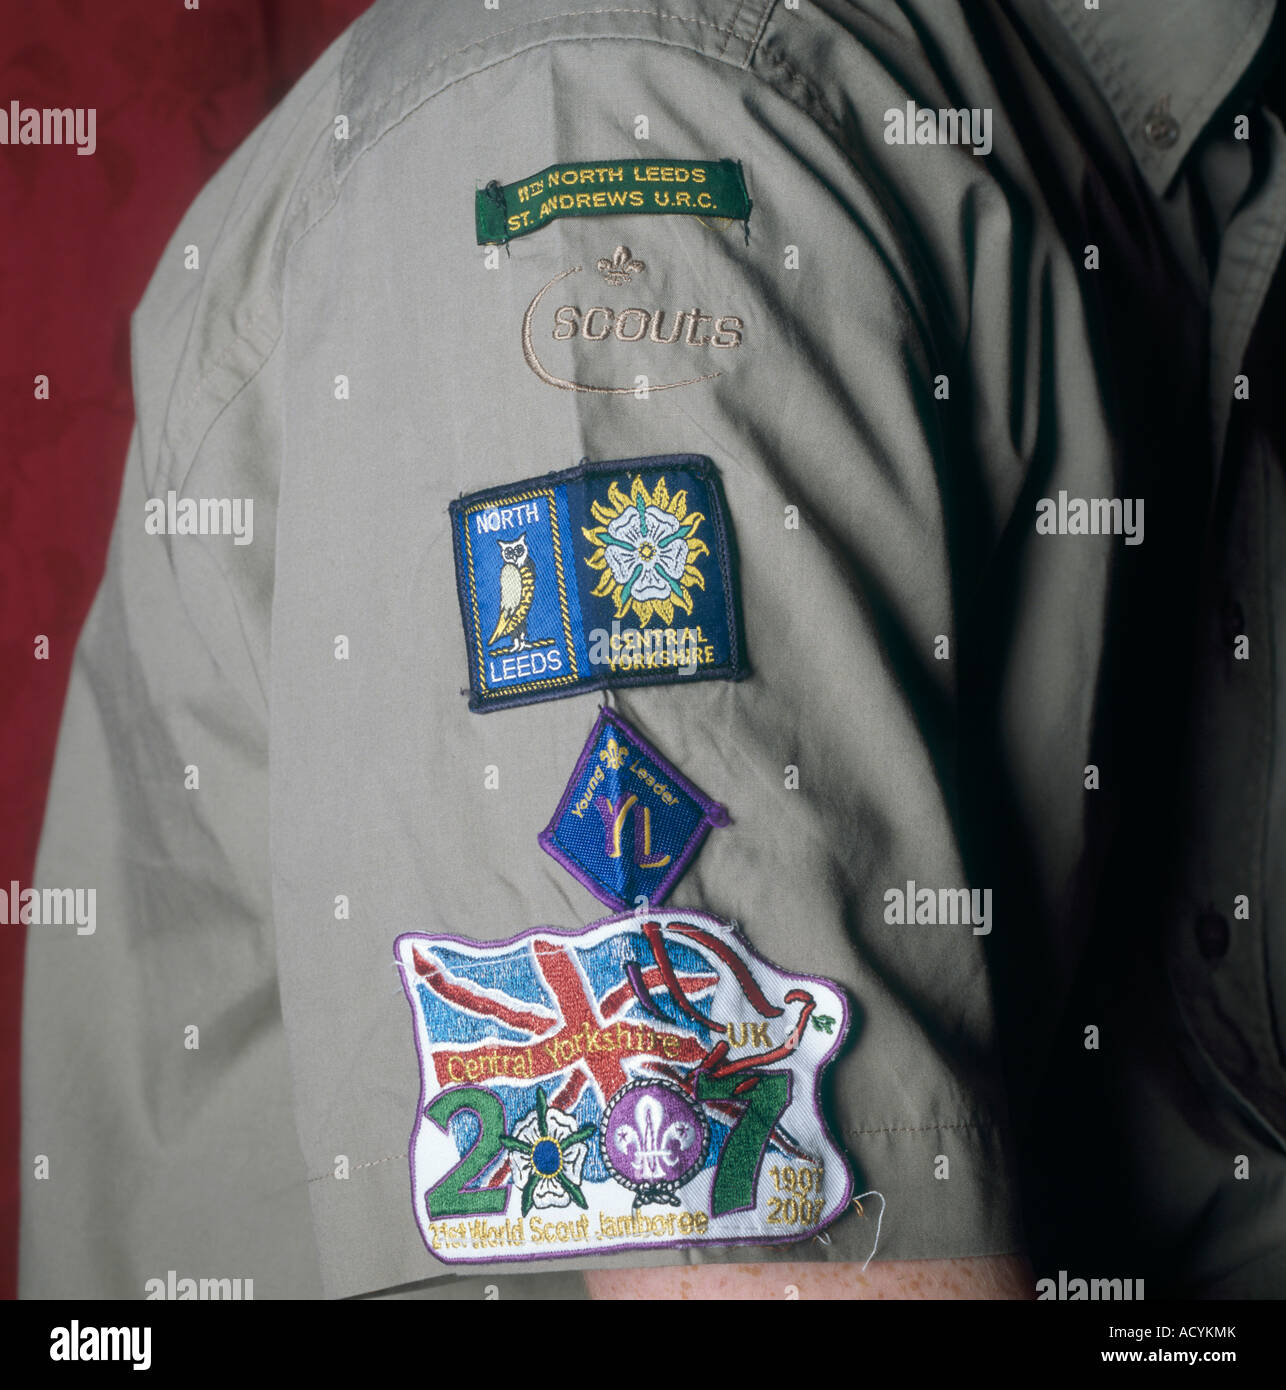 Boy scout with his range of badges for activities completed at the 11th North Leeds troop in Leeds West Yorkshire - Stock Image